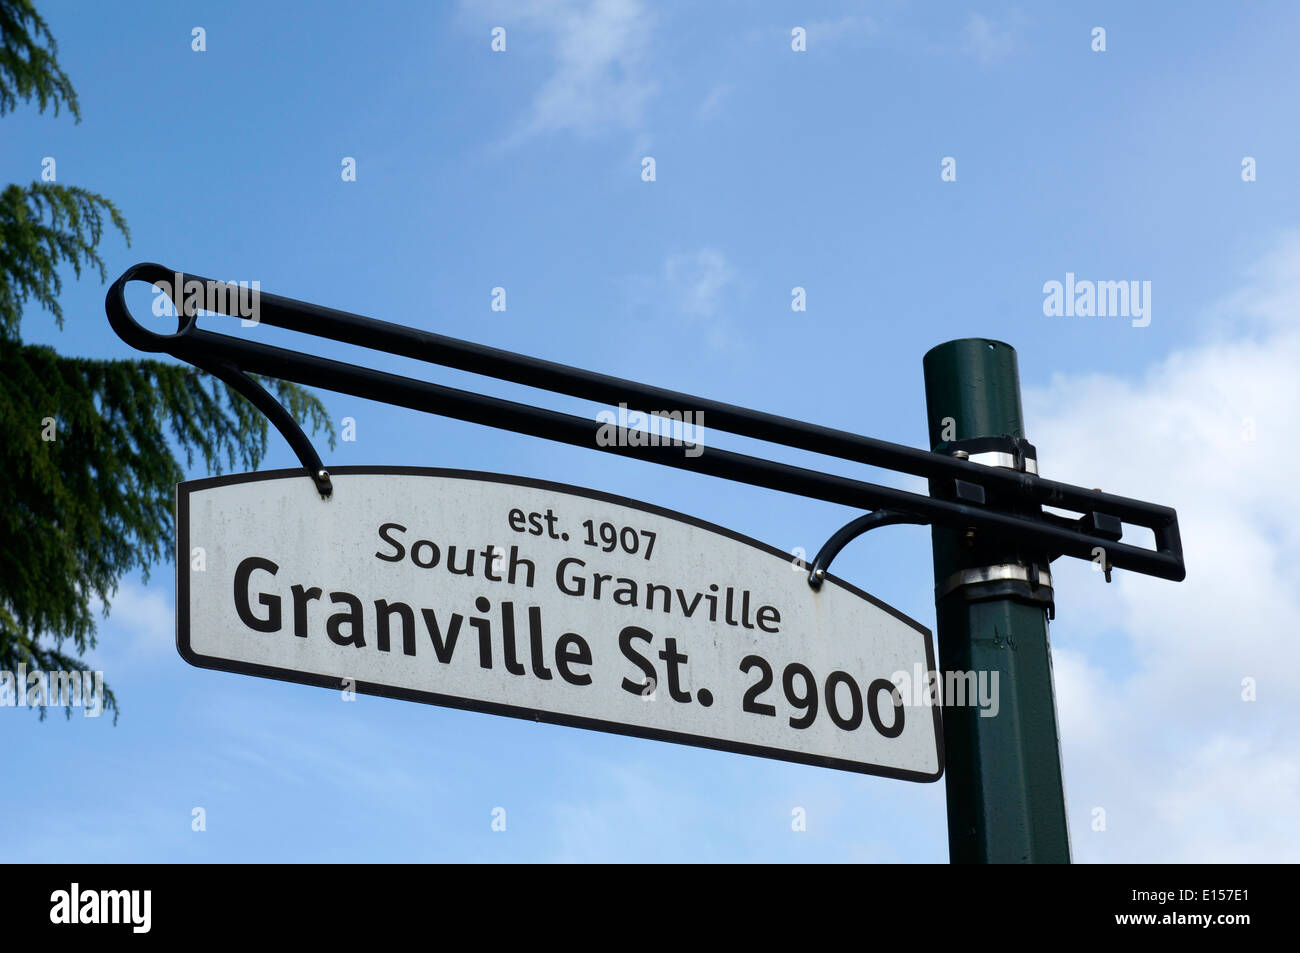 South Granville Street sign, Vancouver, BC, Canada - Stock Image